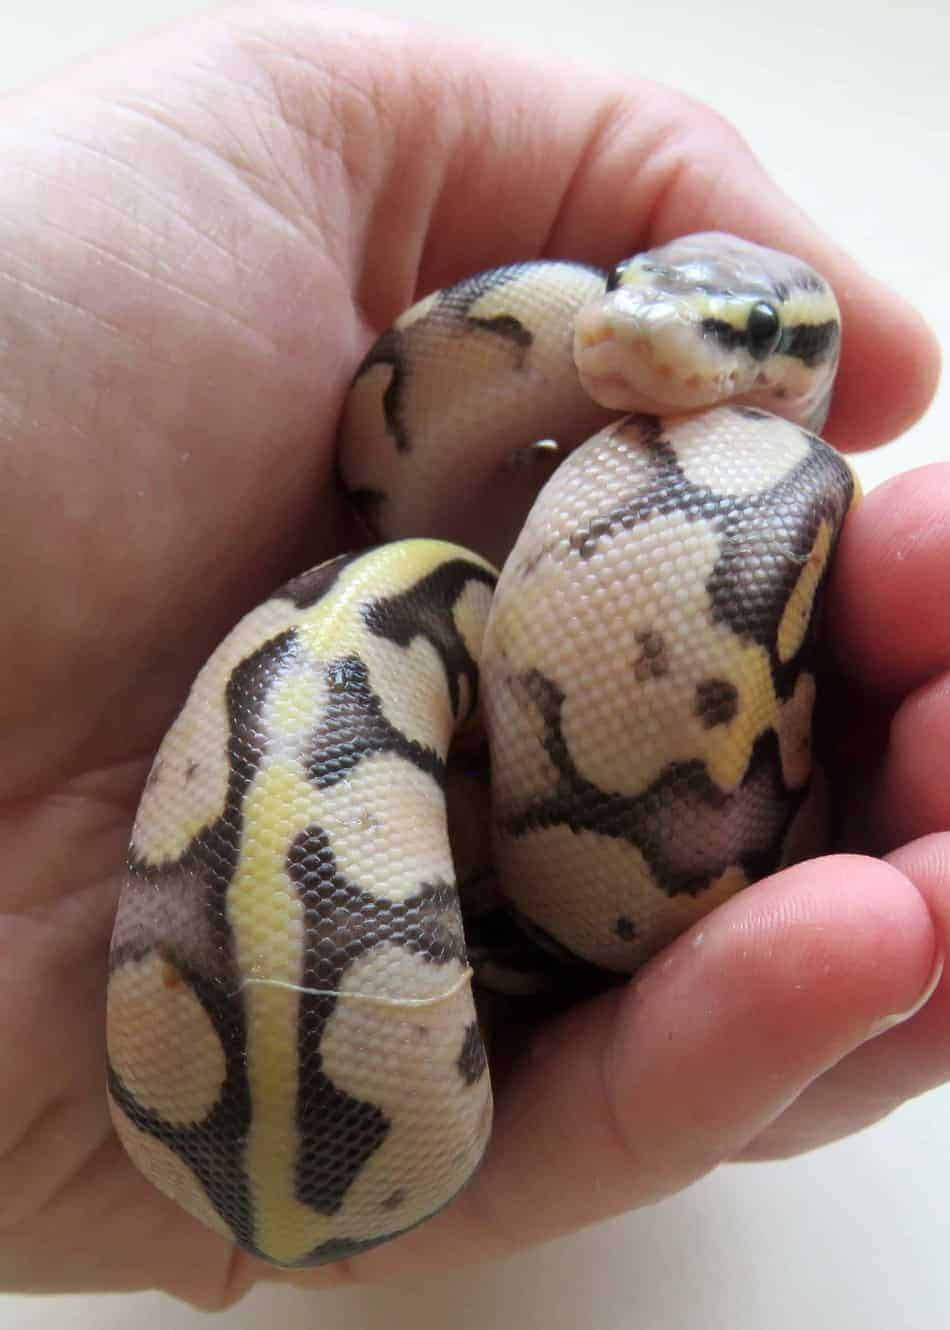 How to Breed a Snake (Complete Guide With Pictures) – Embora